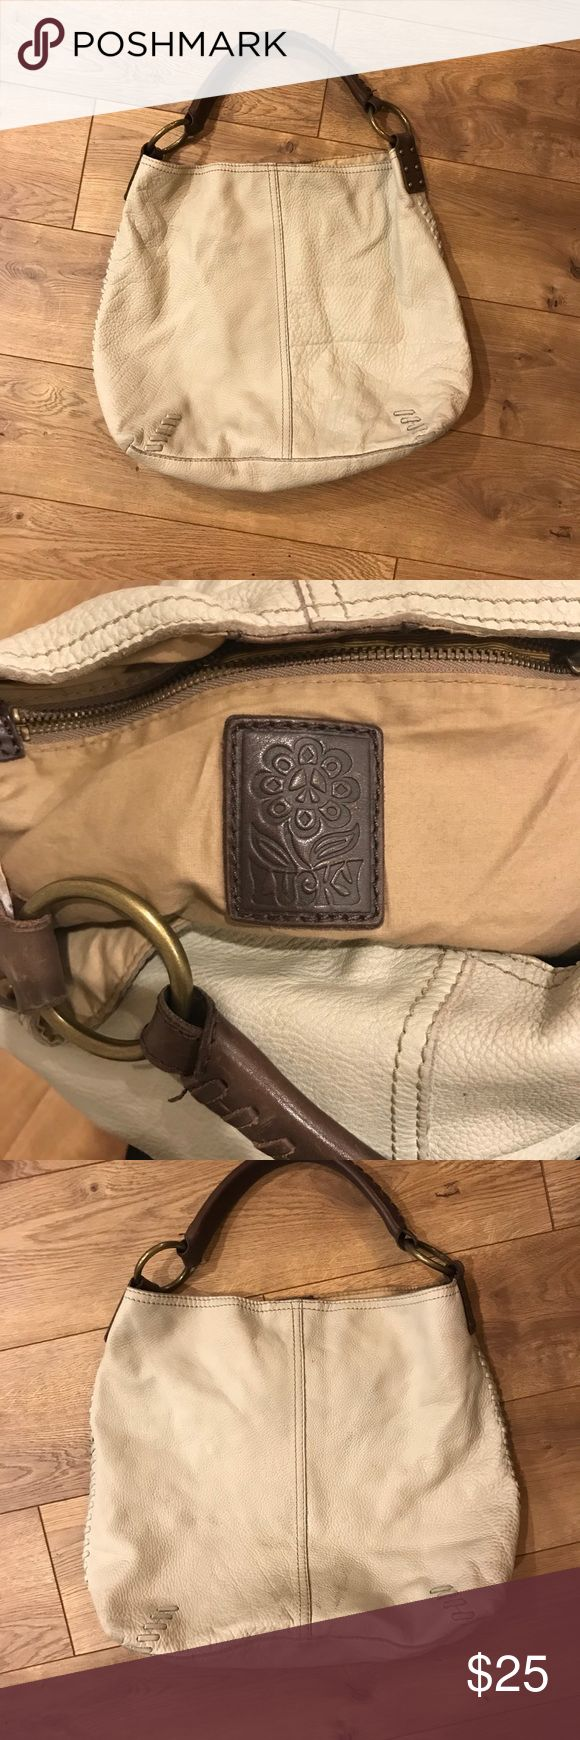 Lucky Brand leather slouch purse Real leather, durable, off white slouch bag by Lucky Brand. Magnetic closure. Lucky Brand Bags Shoulder Bags